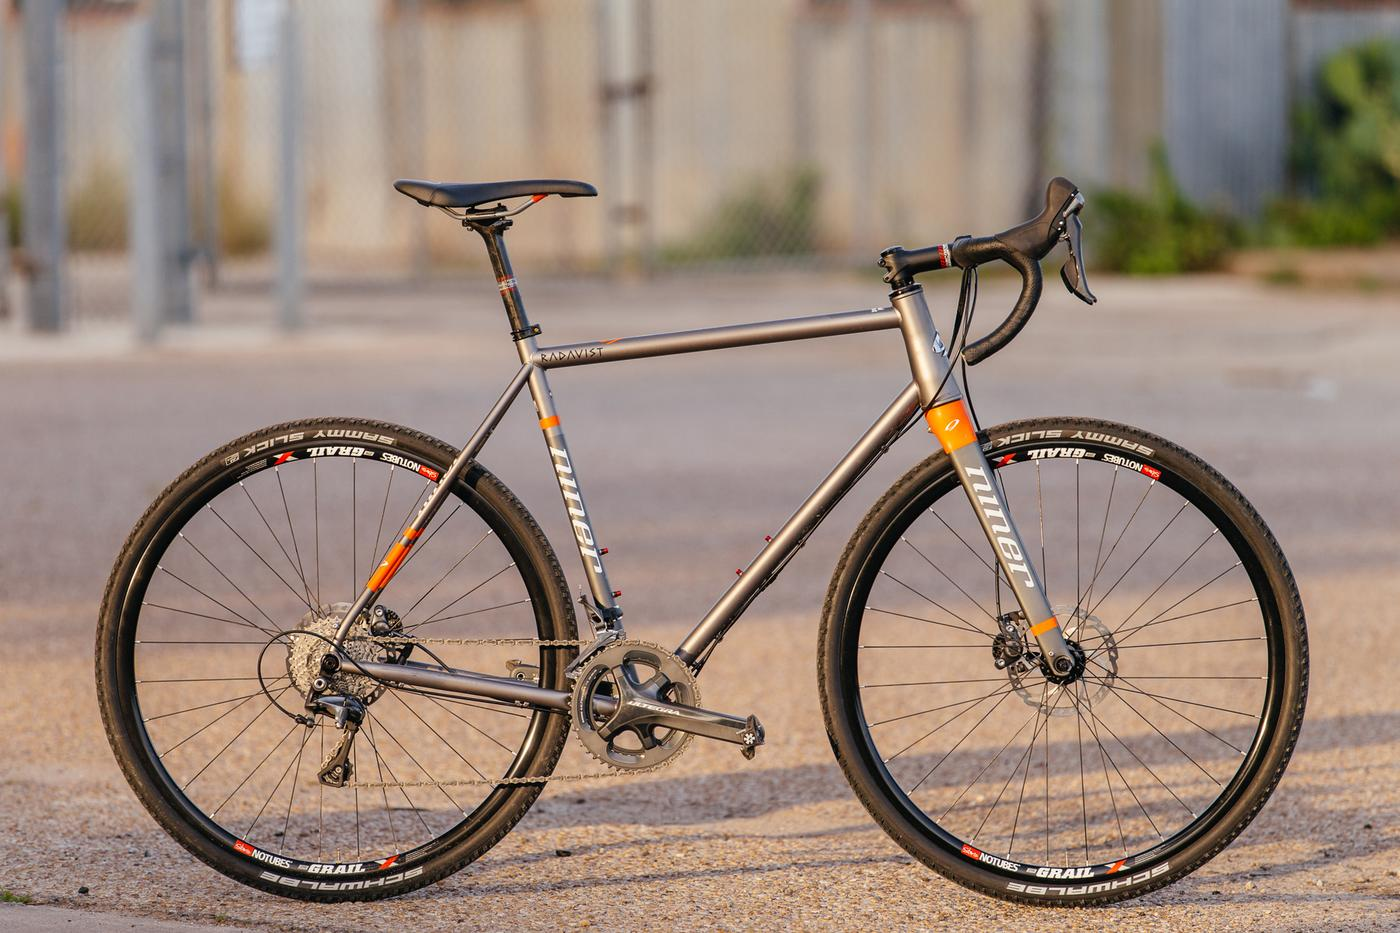 Niner's RLT 9 Steel Disc Cross Bike with Ultegra Hydro